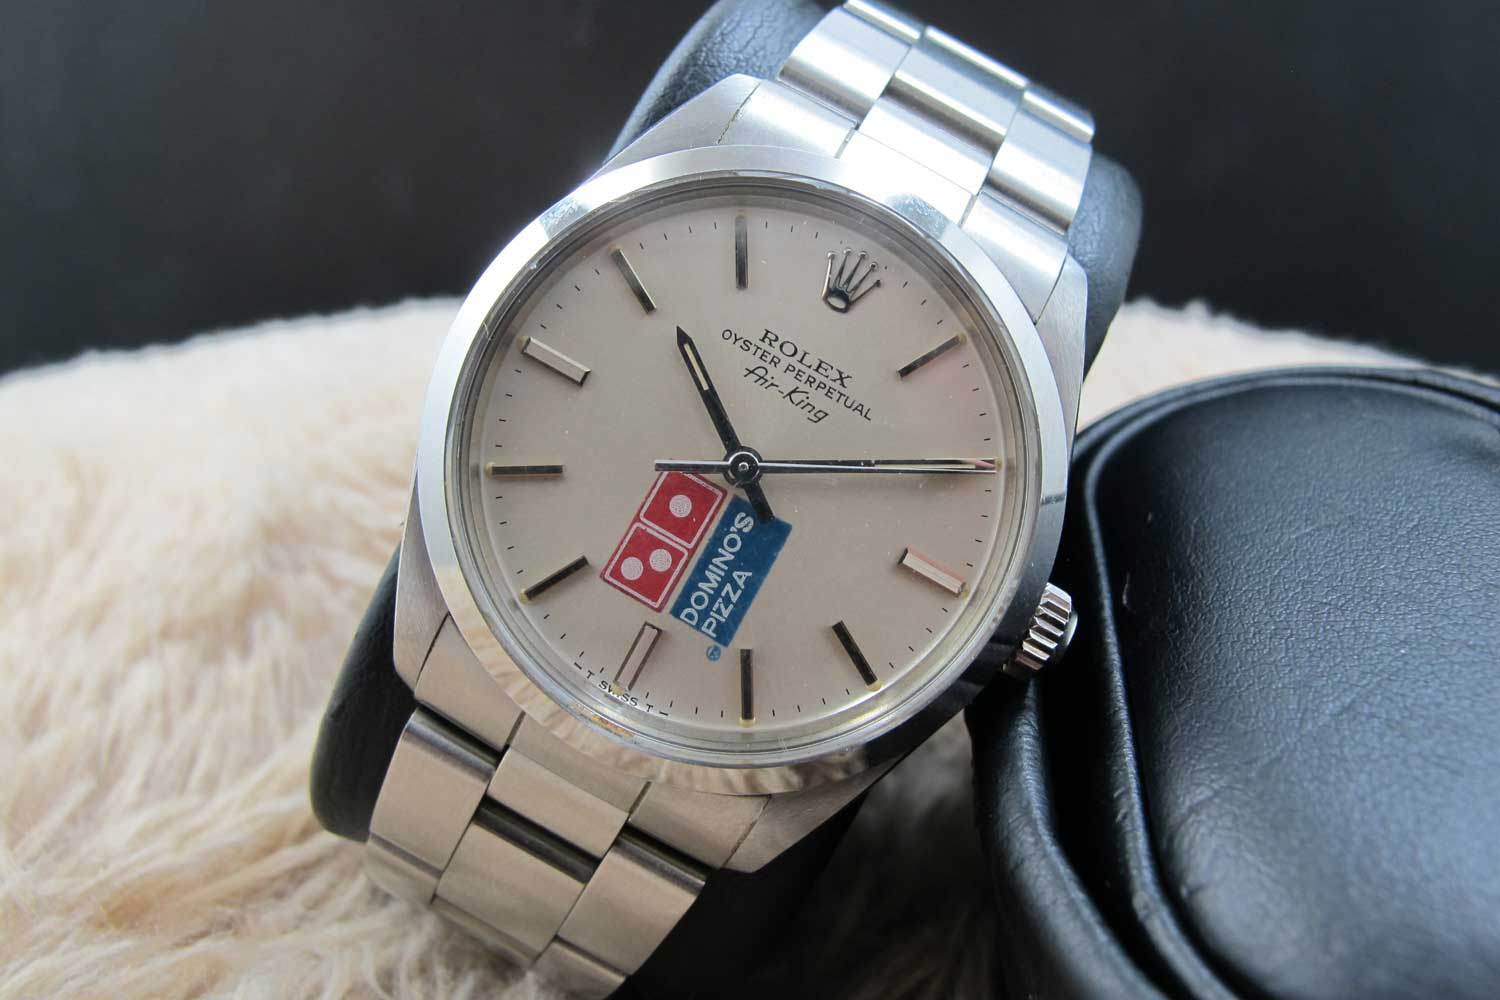 1987 Rolex Air King ref. 5500 with a Domino's Pizza dial (Image: alexpig.com)